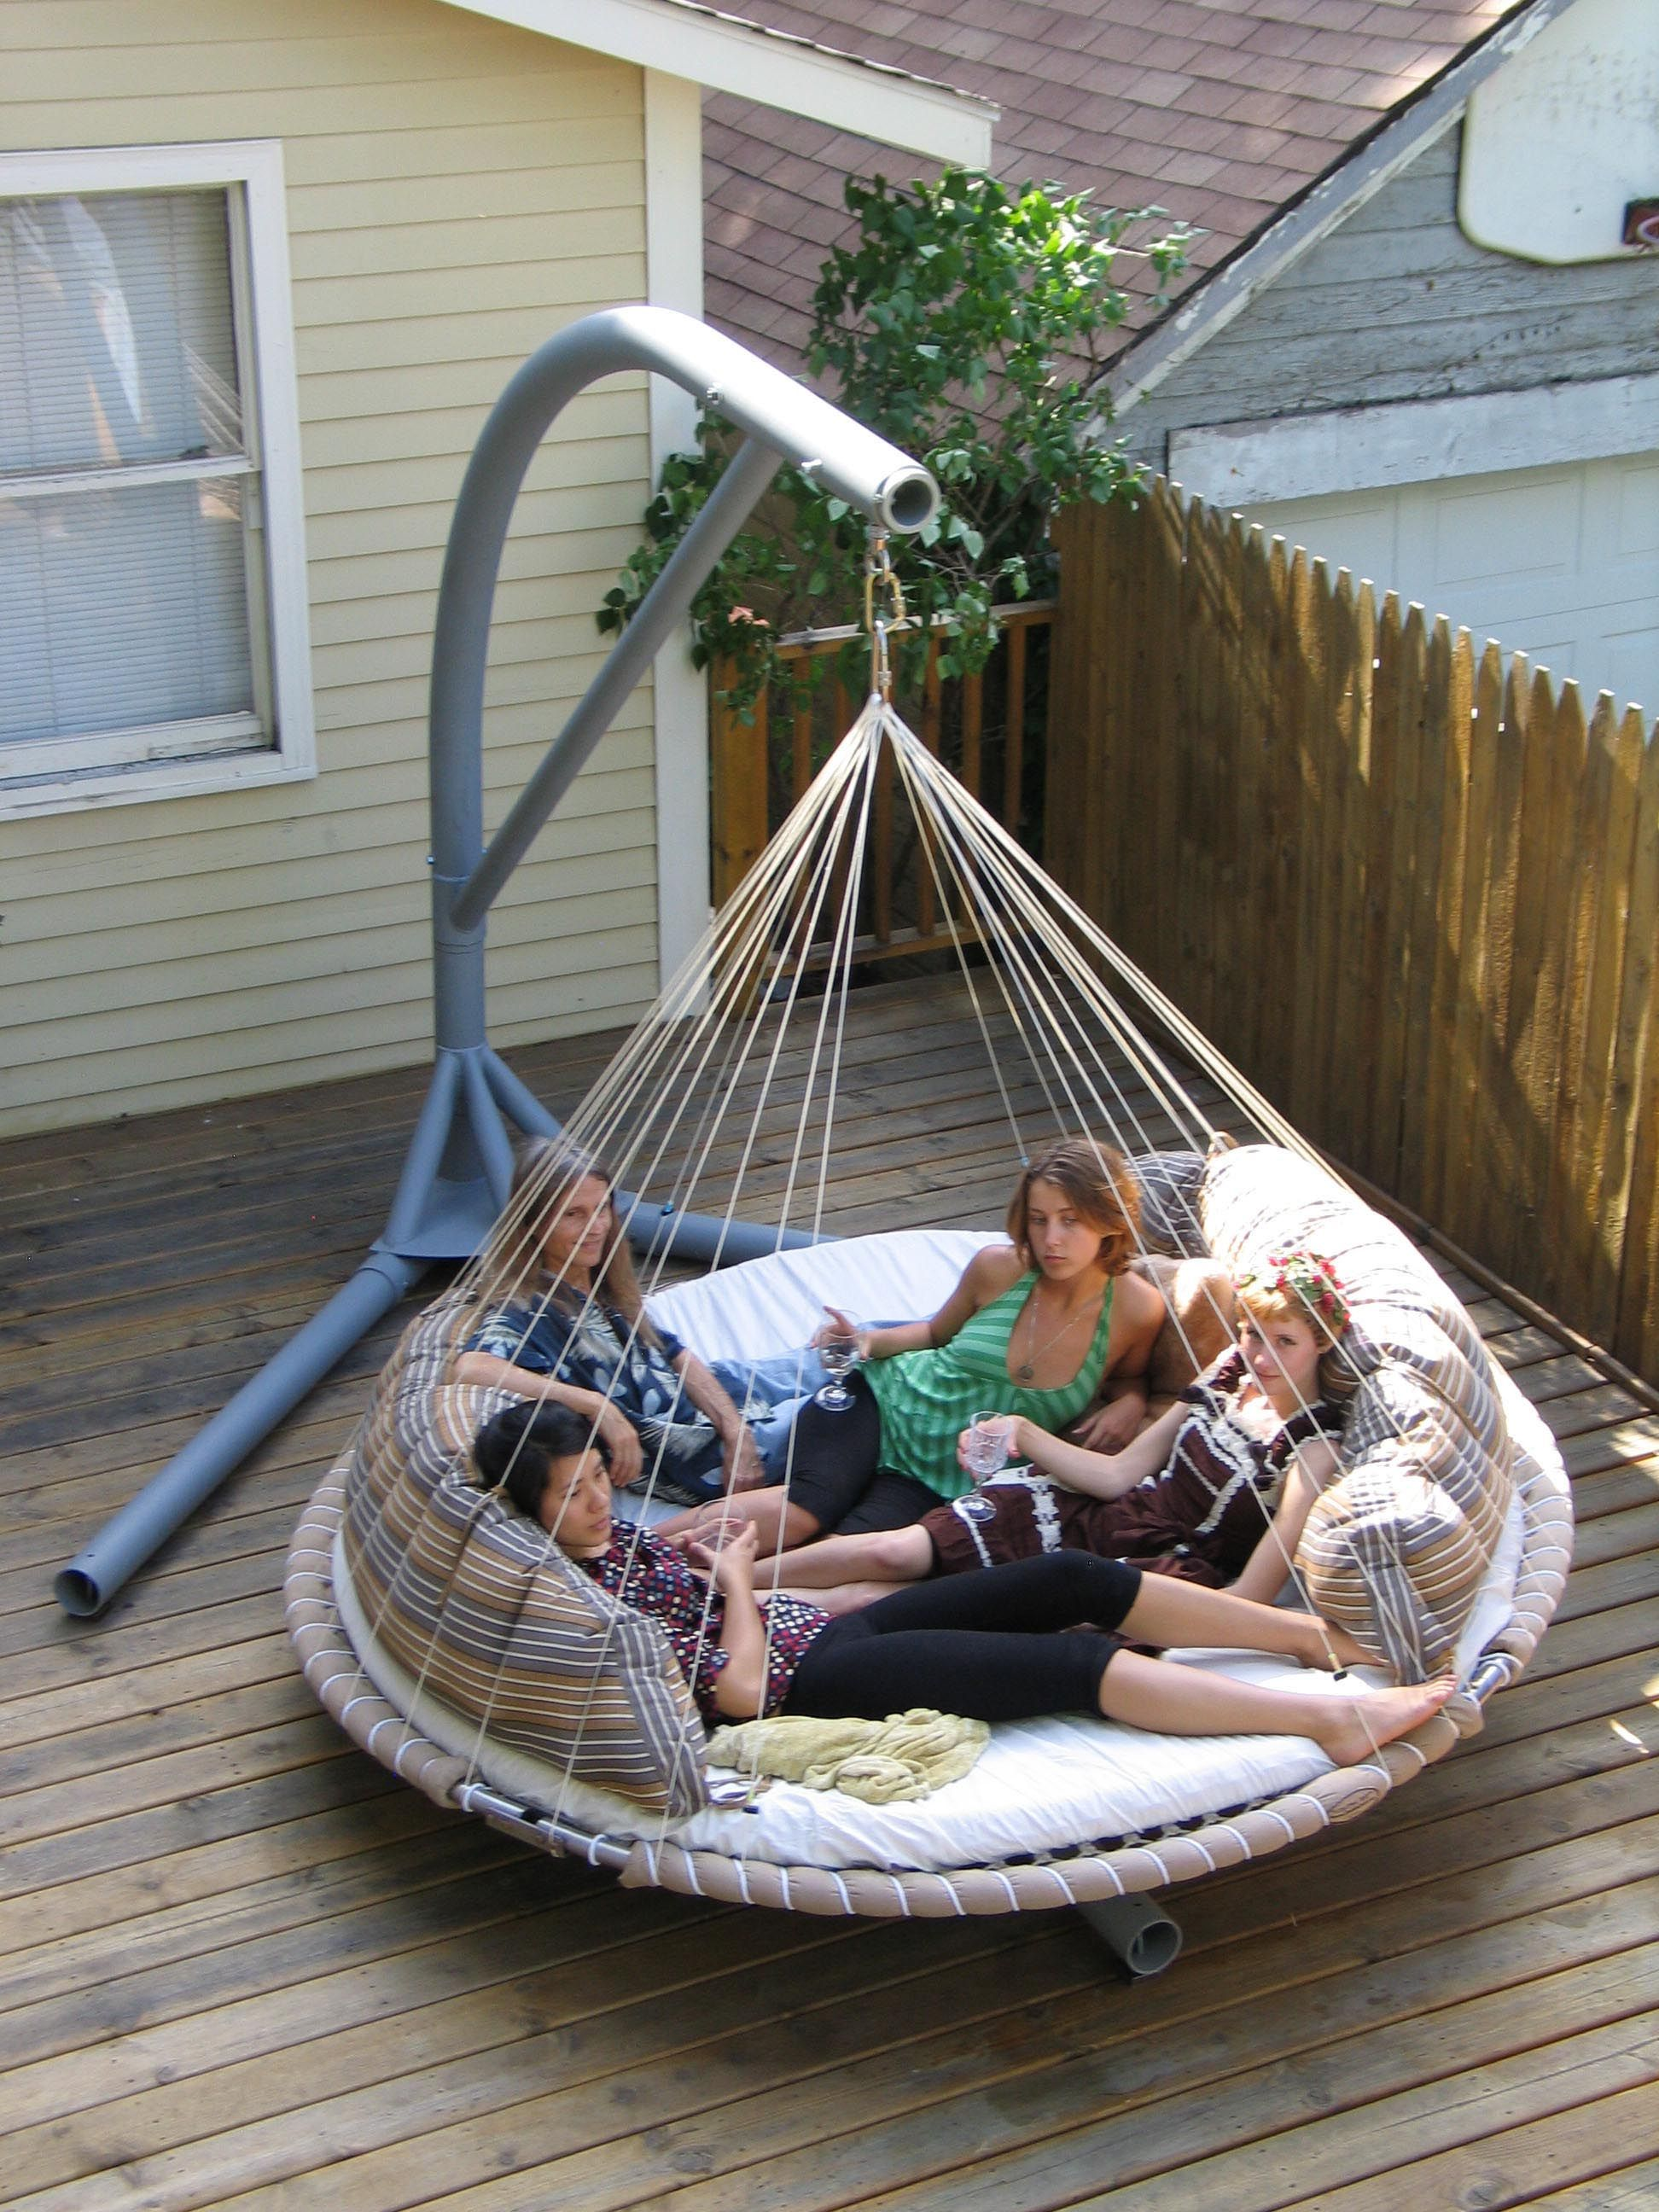 ideas cool bed baldoa outdoor hammock beds design home modern camping feature romantic wonderful swing